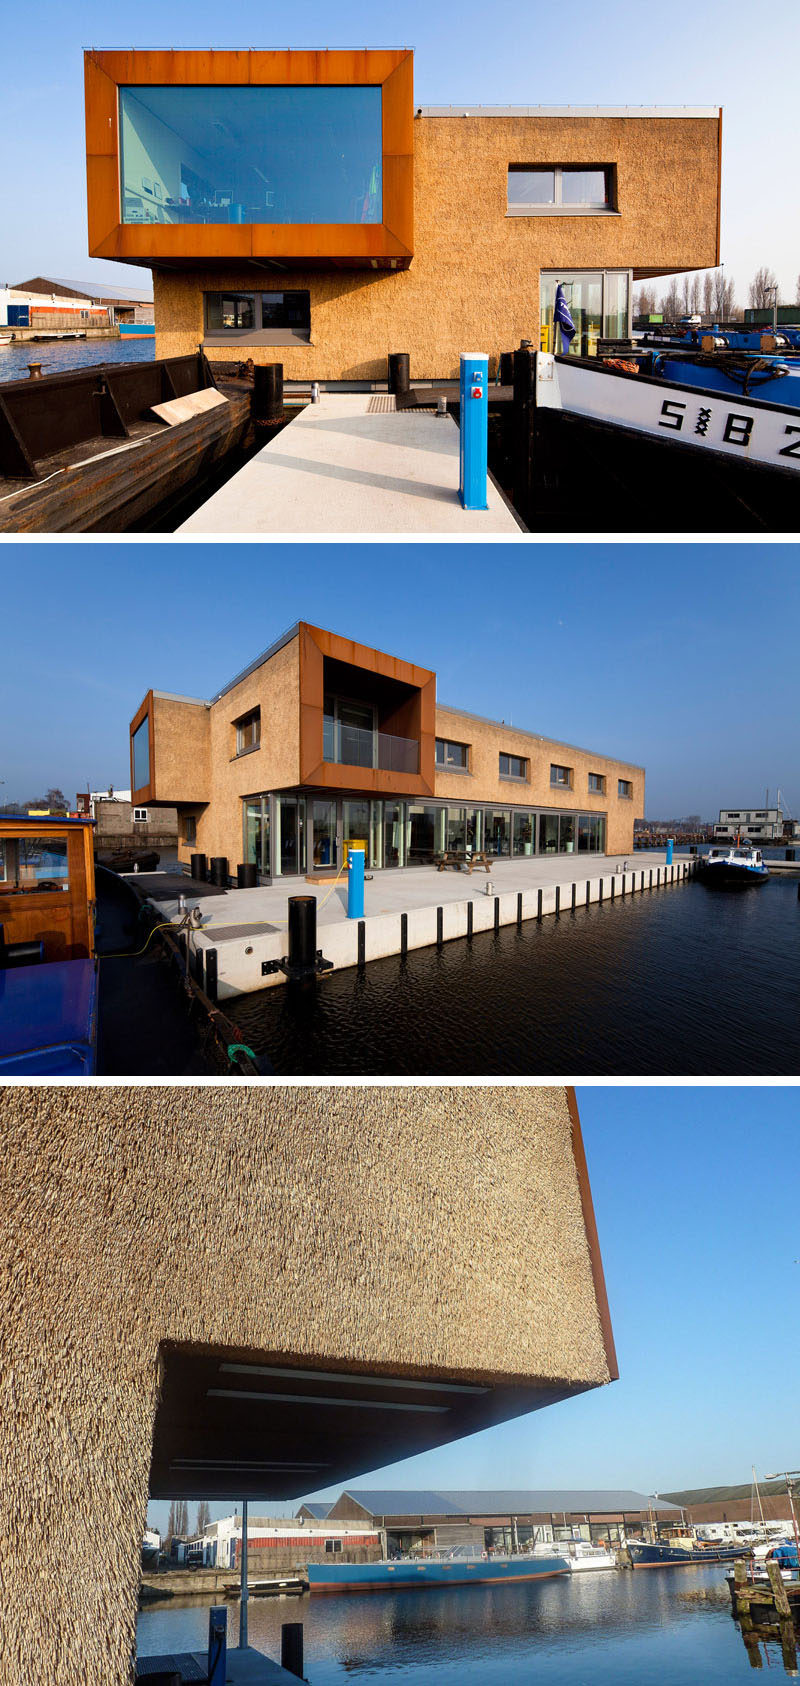 12 Examples Of Modern Houses And Buildings That Have A Thatched Roof // This floating office building for canal cleaners in Amsterdam is covered with both steel and trimmed thatch that protect it from the elements.